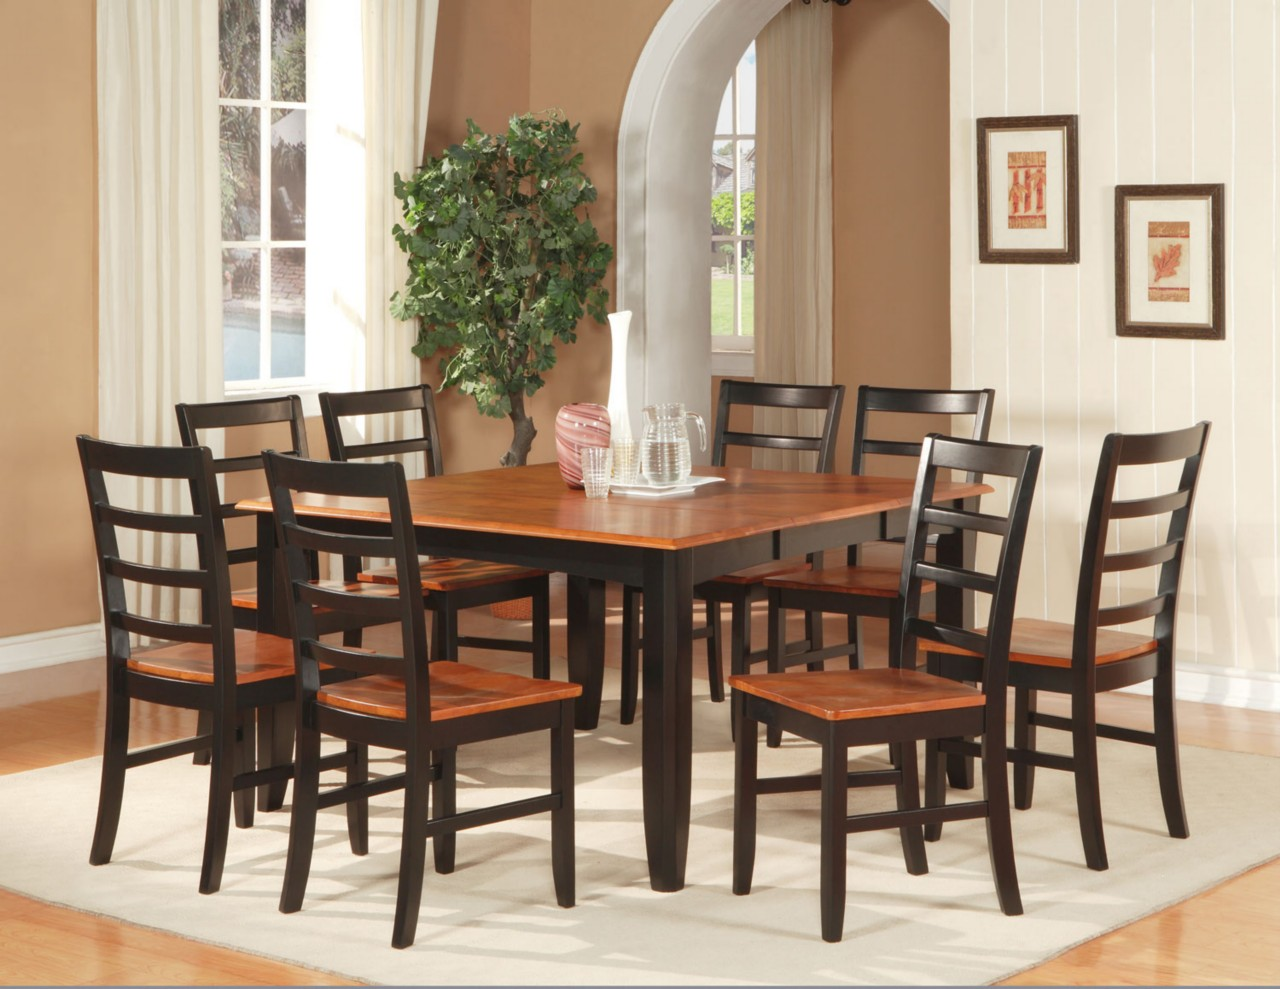 9 PC SQUARE DINETTE DINING ROOM TABLE SET AND 8 CHAIRS eBay : 481368525o from www.ebay.com size 1280 x 989 jpeg 216kB